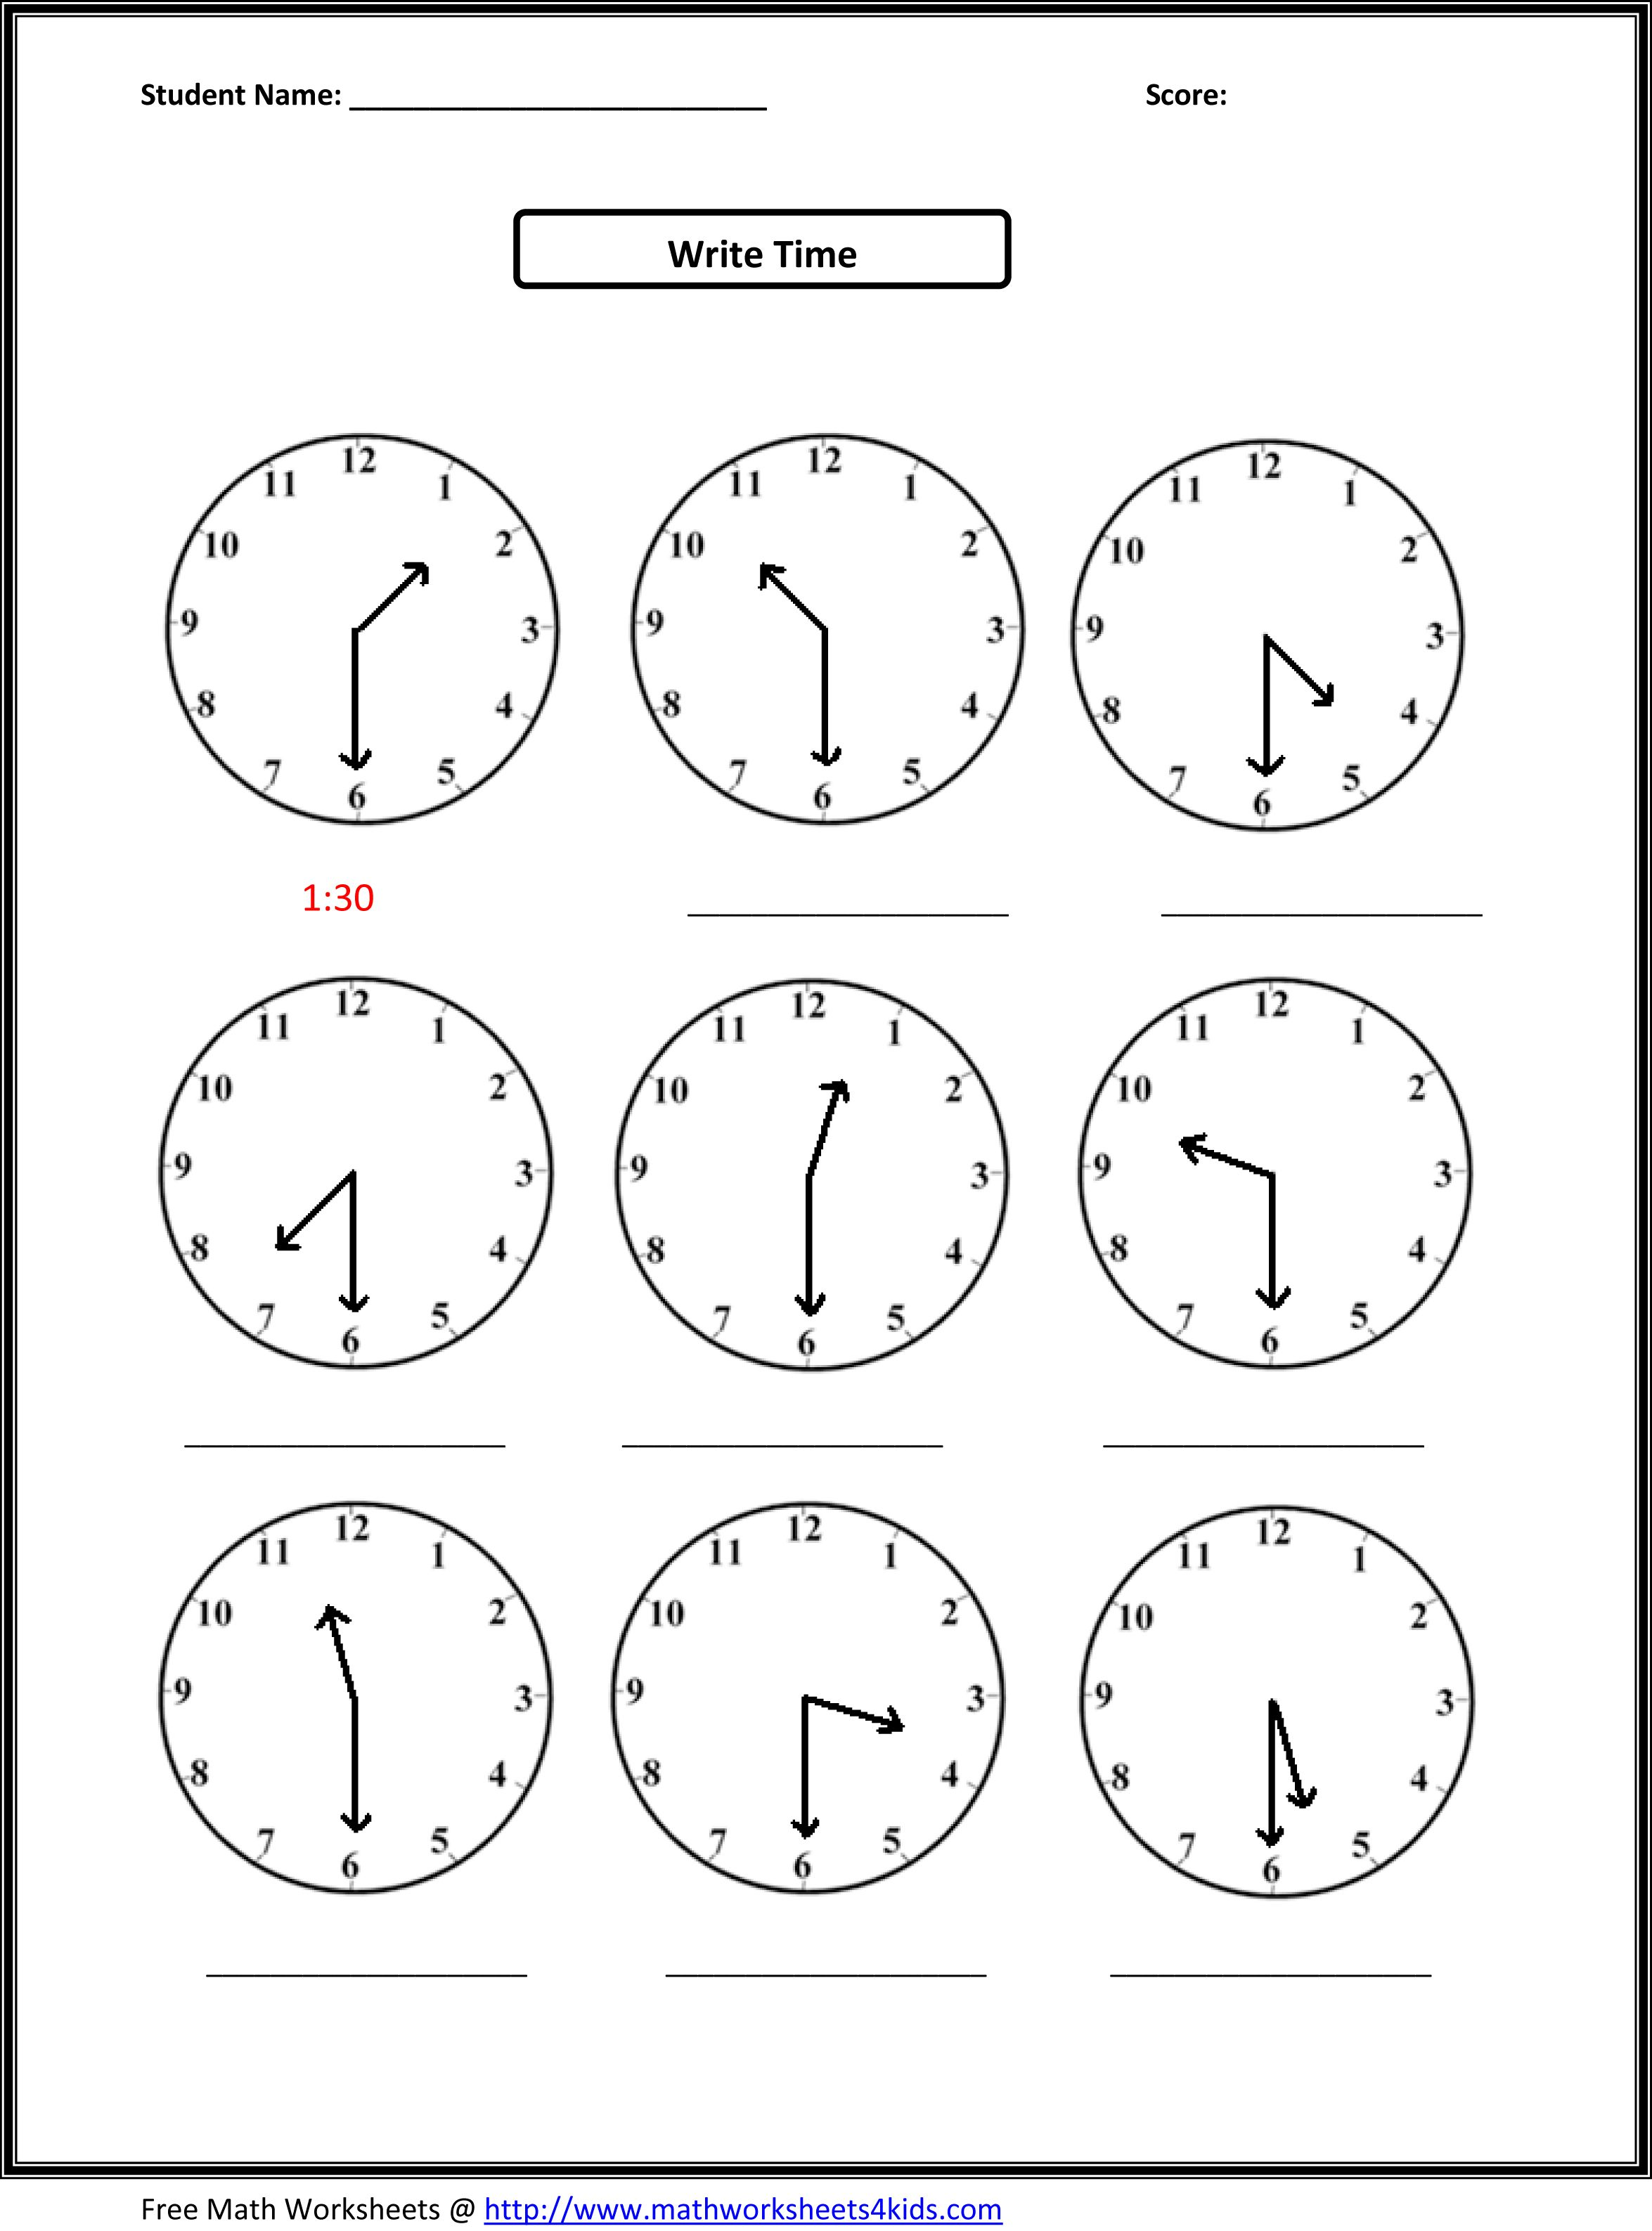 Weirdmailus  Surprising Worksheet On Time For Grade   Reocurent With Entrancing Free Printable Telling Time Worksheets Nd Grade  Reocurent With Endearing Maths Area And Perimeter Worksheets Also Math Worksheet Sites In Addition Literary Element Worksheet And Rocks And Soil Worksheets As Well As Worksheet Of Maths For Class  Additionally Counting In S Worksheets From Reocurentcom With Weirdmailus  Entrancing Worksheet On Time For Grade   Reocurent With Endearing Free Printable Telling Time Worksheets Nd Grade  Reocurent And Surprising Maths Area And Perimeter Worksheets Also Math Worksheet Sites In Addition Literary Element Worksheet From Reocurentcom